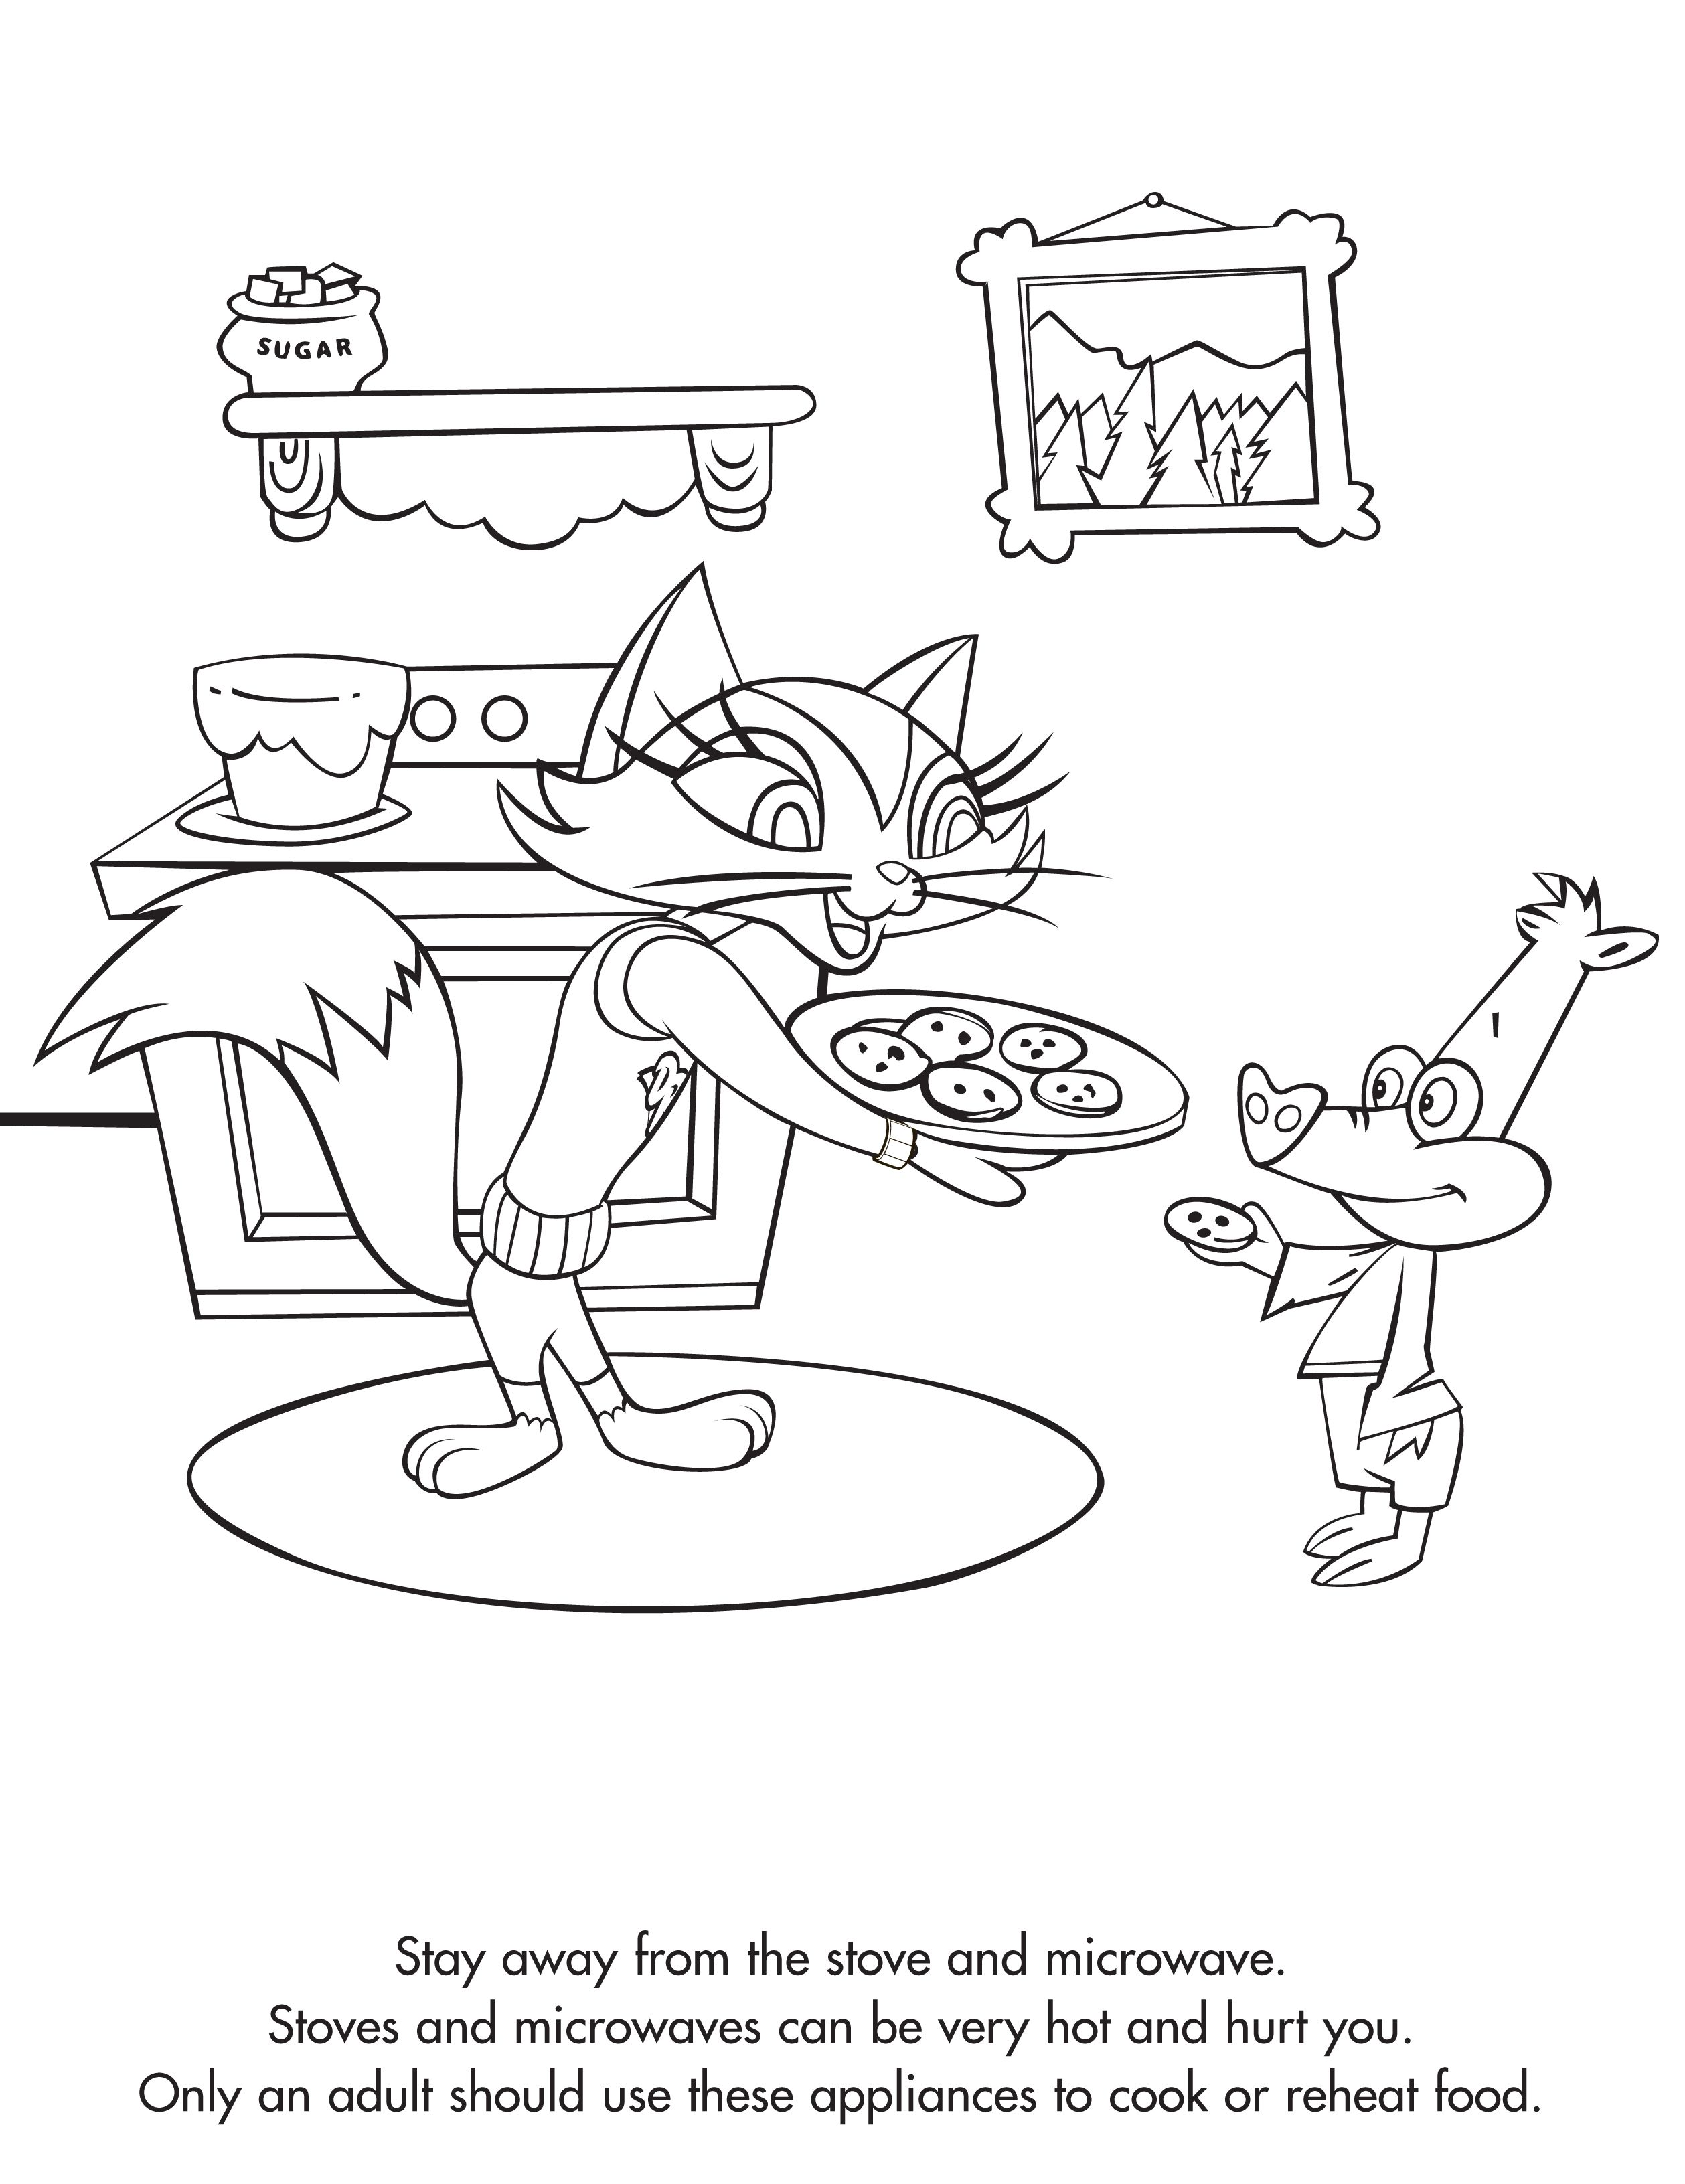 Coloring sheet kitchen - Teach Your Children Kitchen Safety When They Want To Help With The Holiday Cooking Coloring Pagessafetycooking